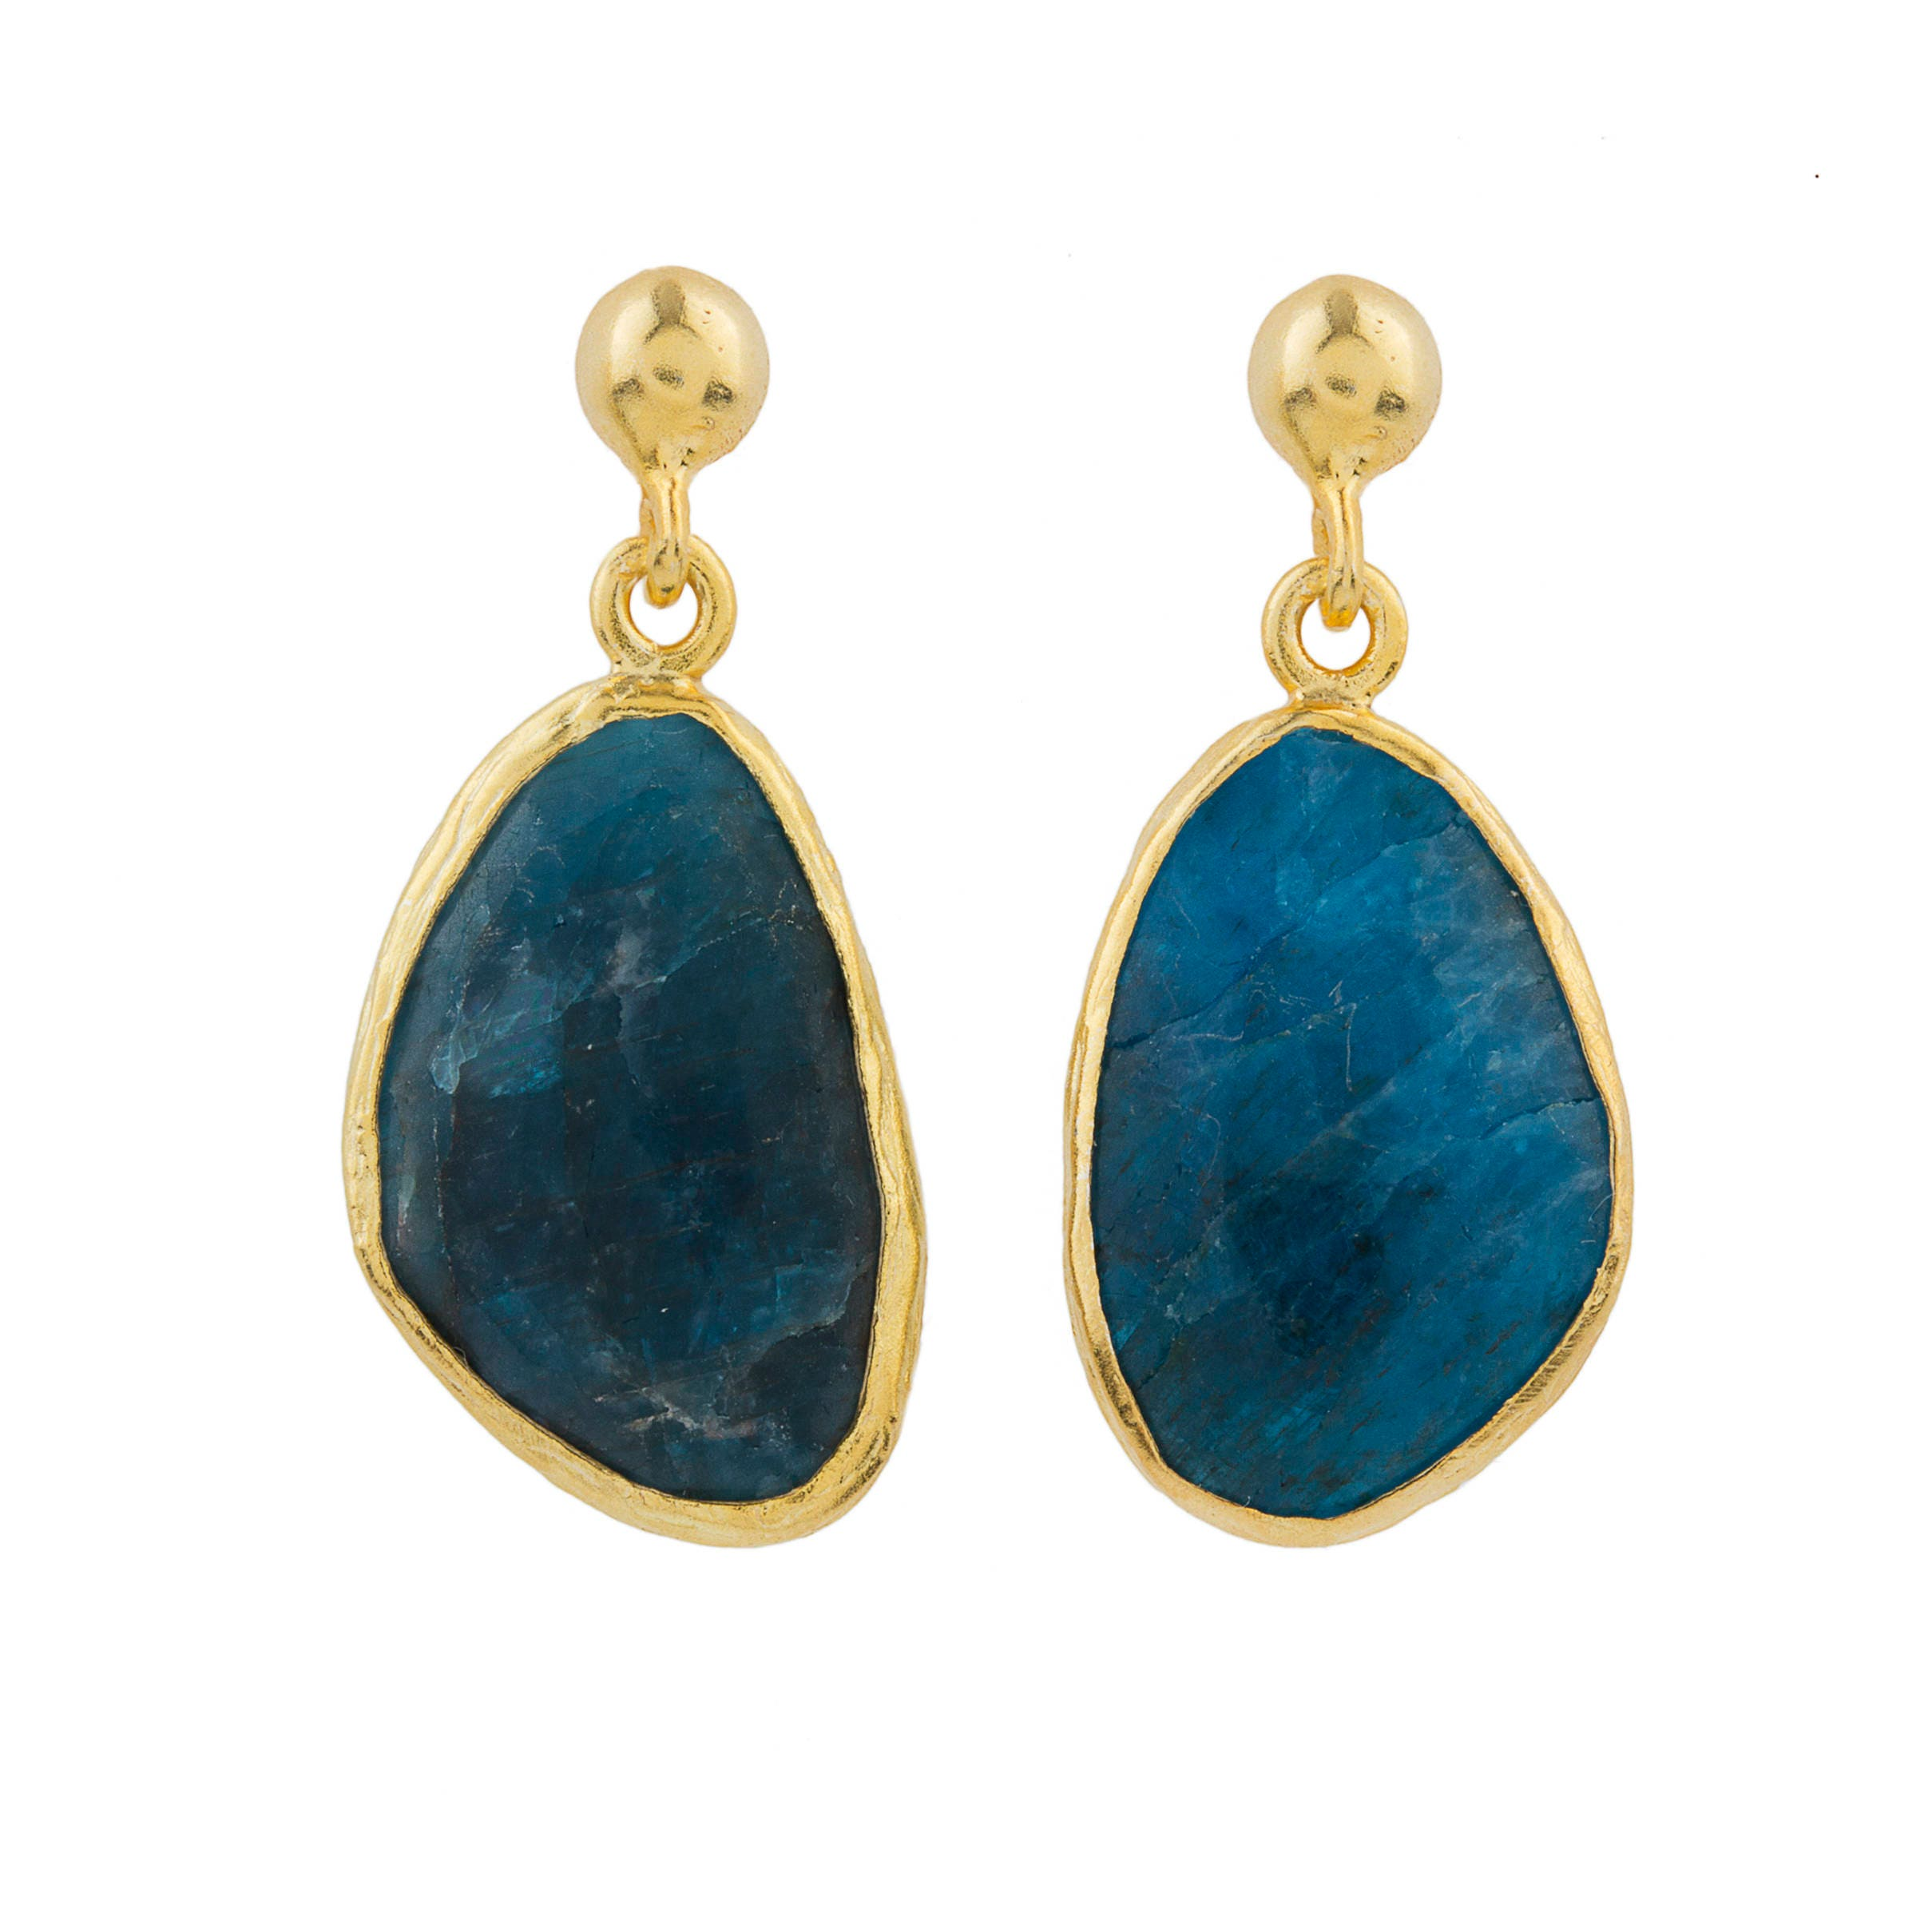 aqua tessa in earrings jewelry lg apatite scott categories brass stud default kendra